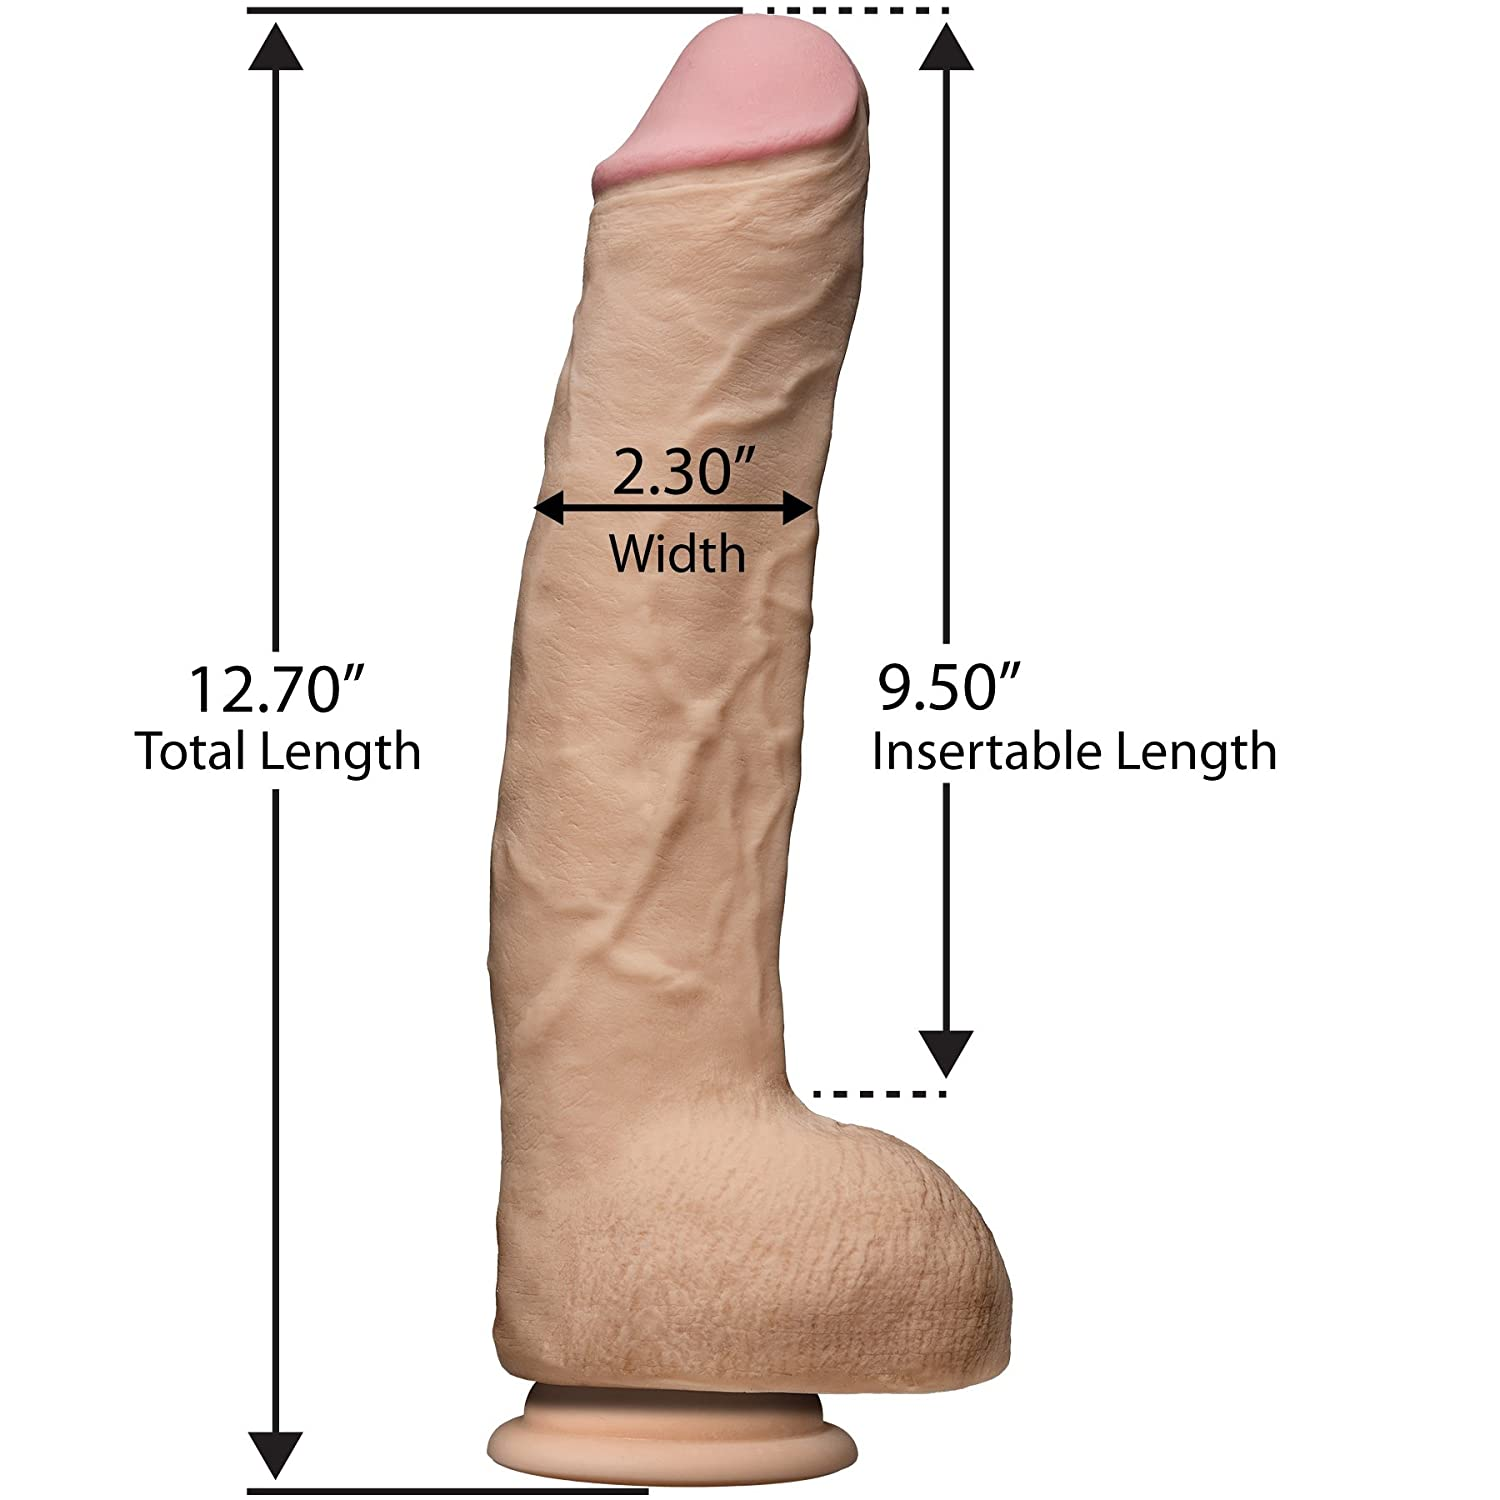 Dildo Price Comparison - New Porn-9397